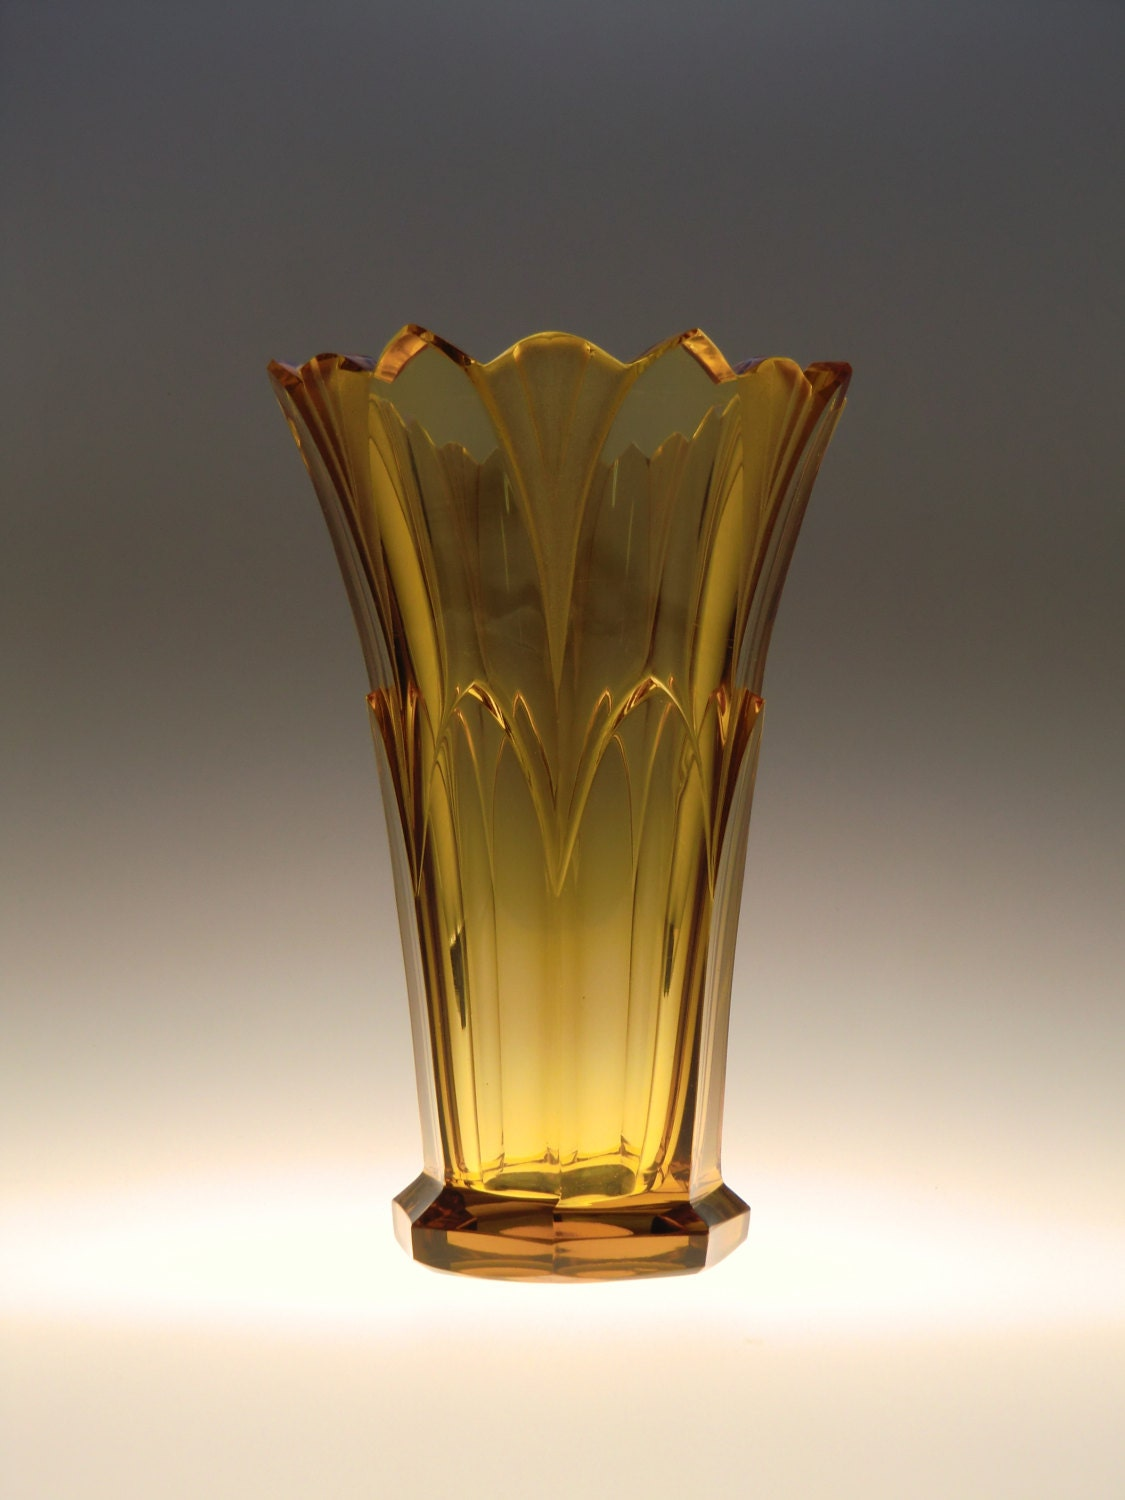 Bohemian czech rudolf hlousek art deco cut amber glass vase zoom floridaeventfo Image collections